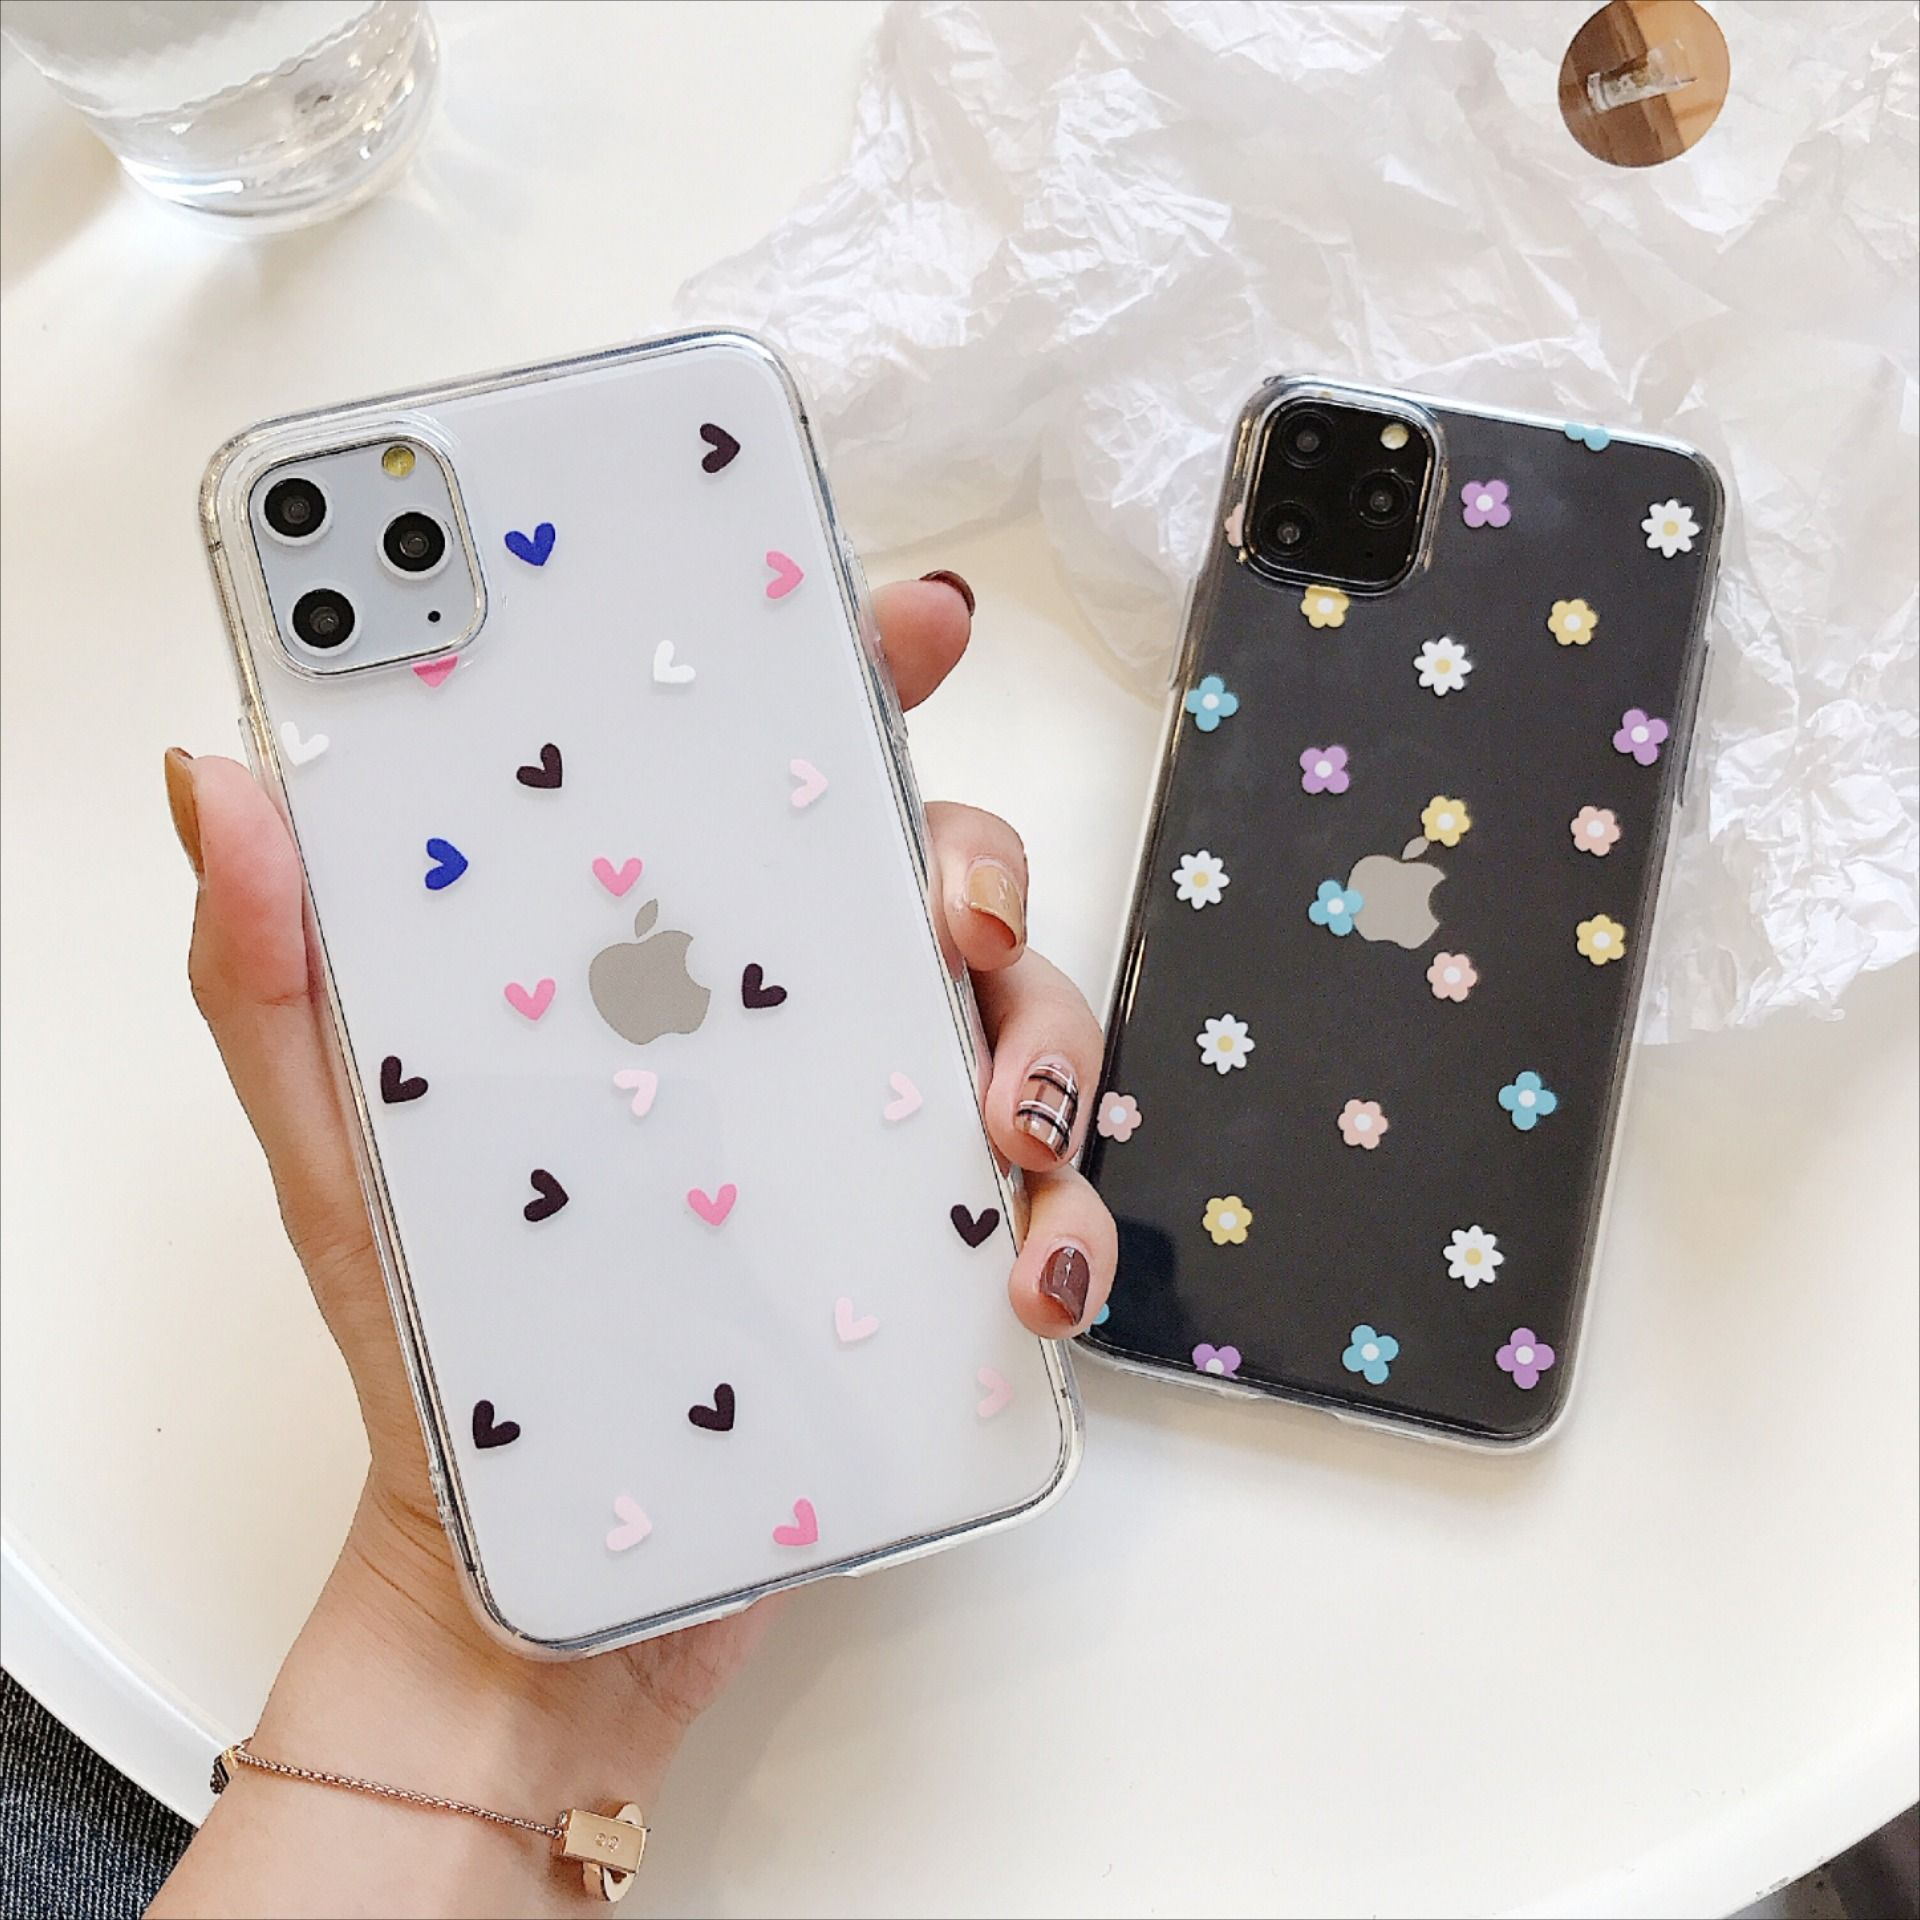 Flower love heart phone cases for iphone 11 x xs max xr 6